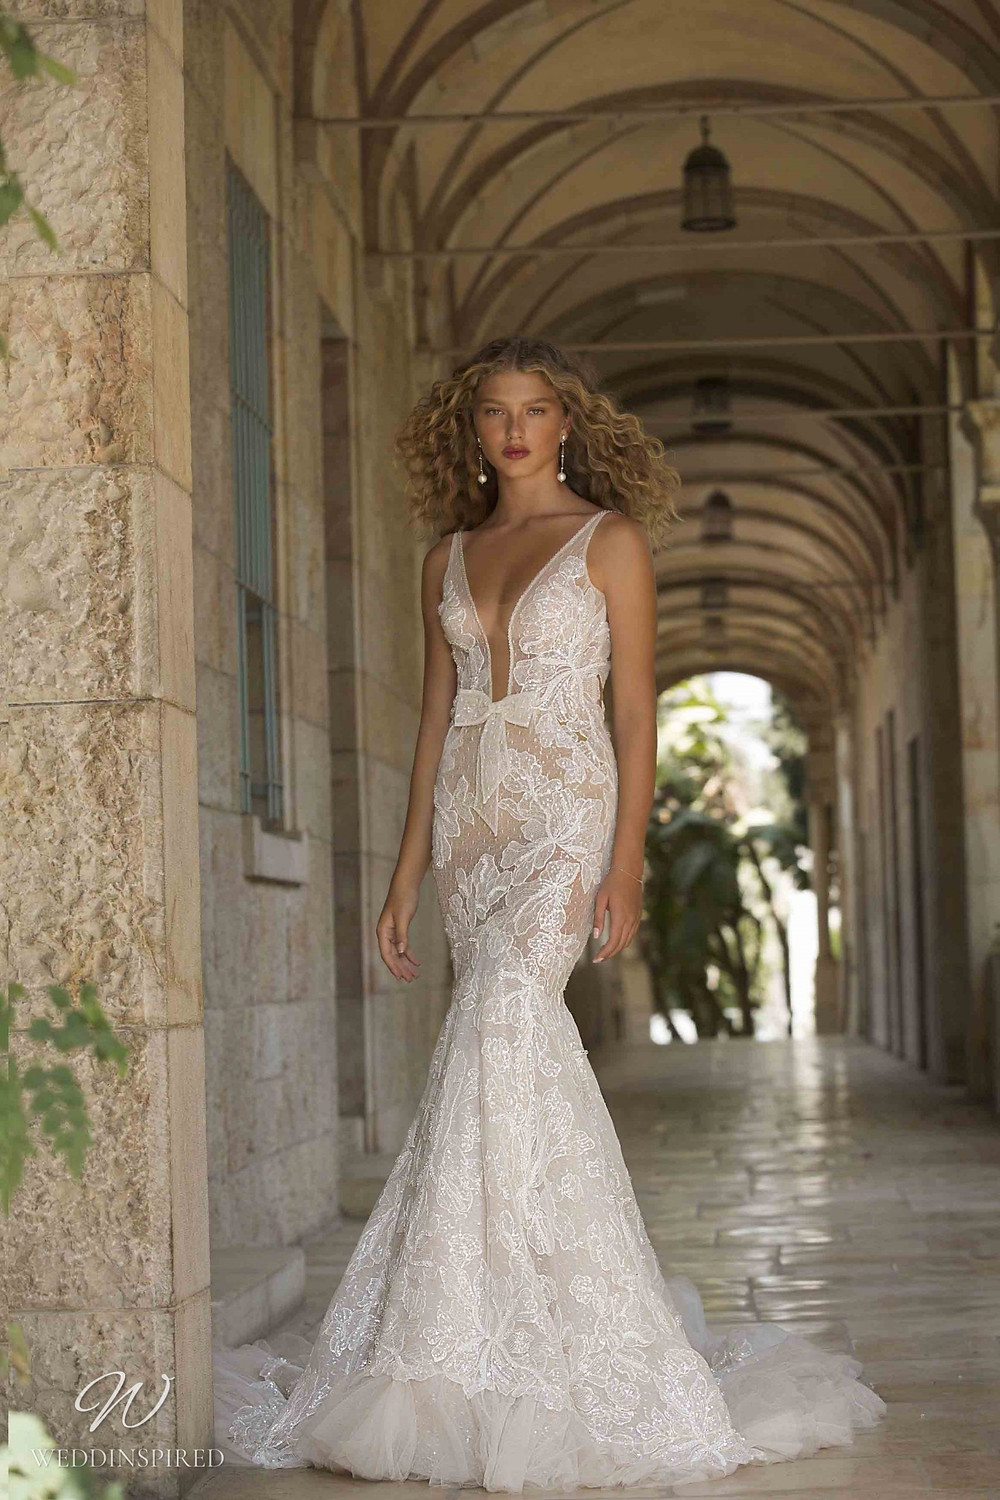 A Berta Colony 2021 lace mermaid wedding dress with a low v neckline and straps